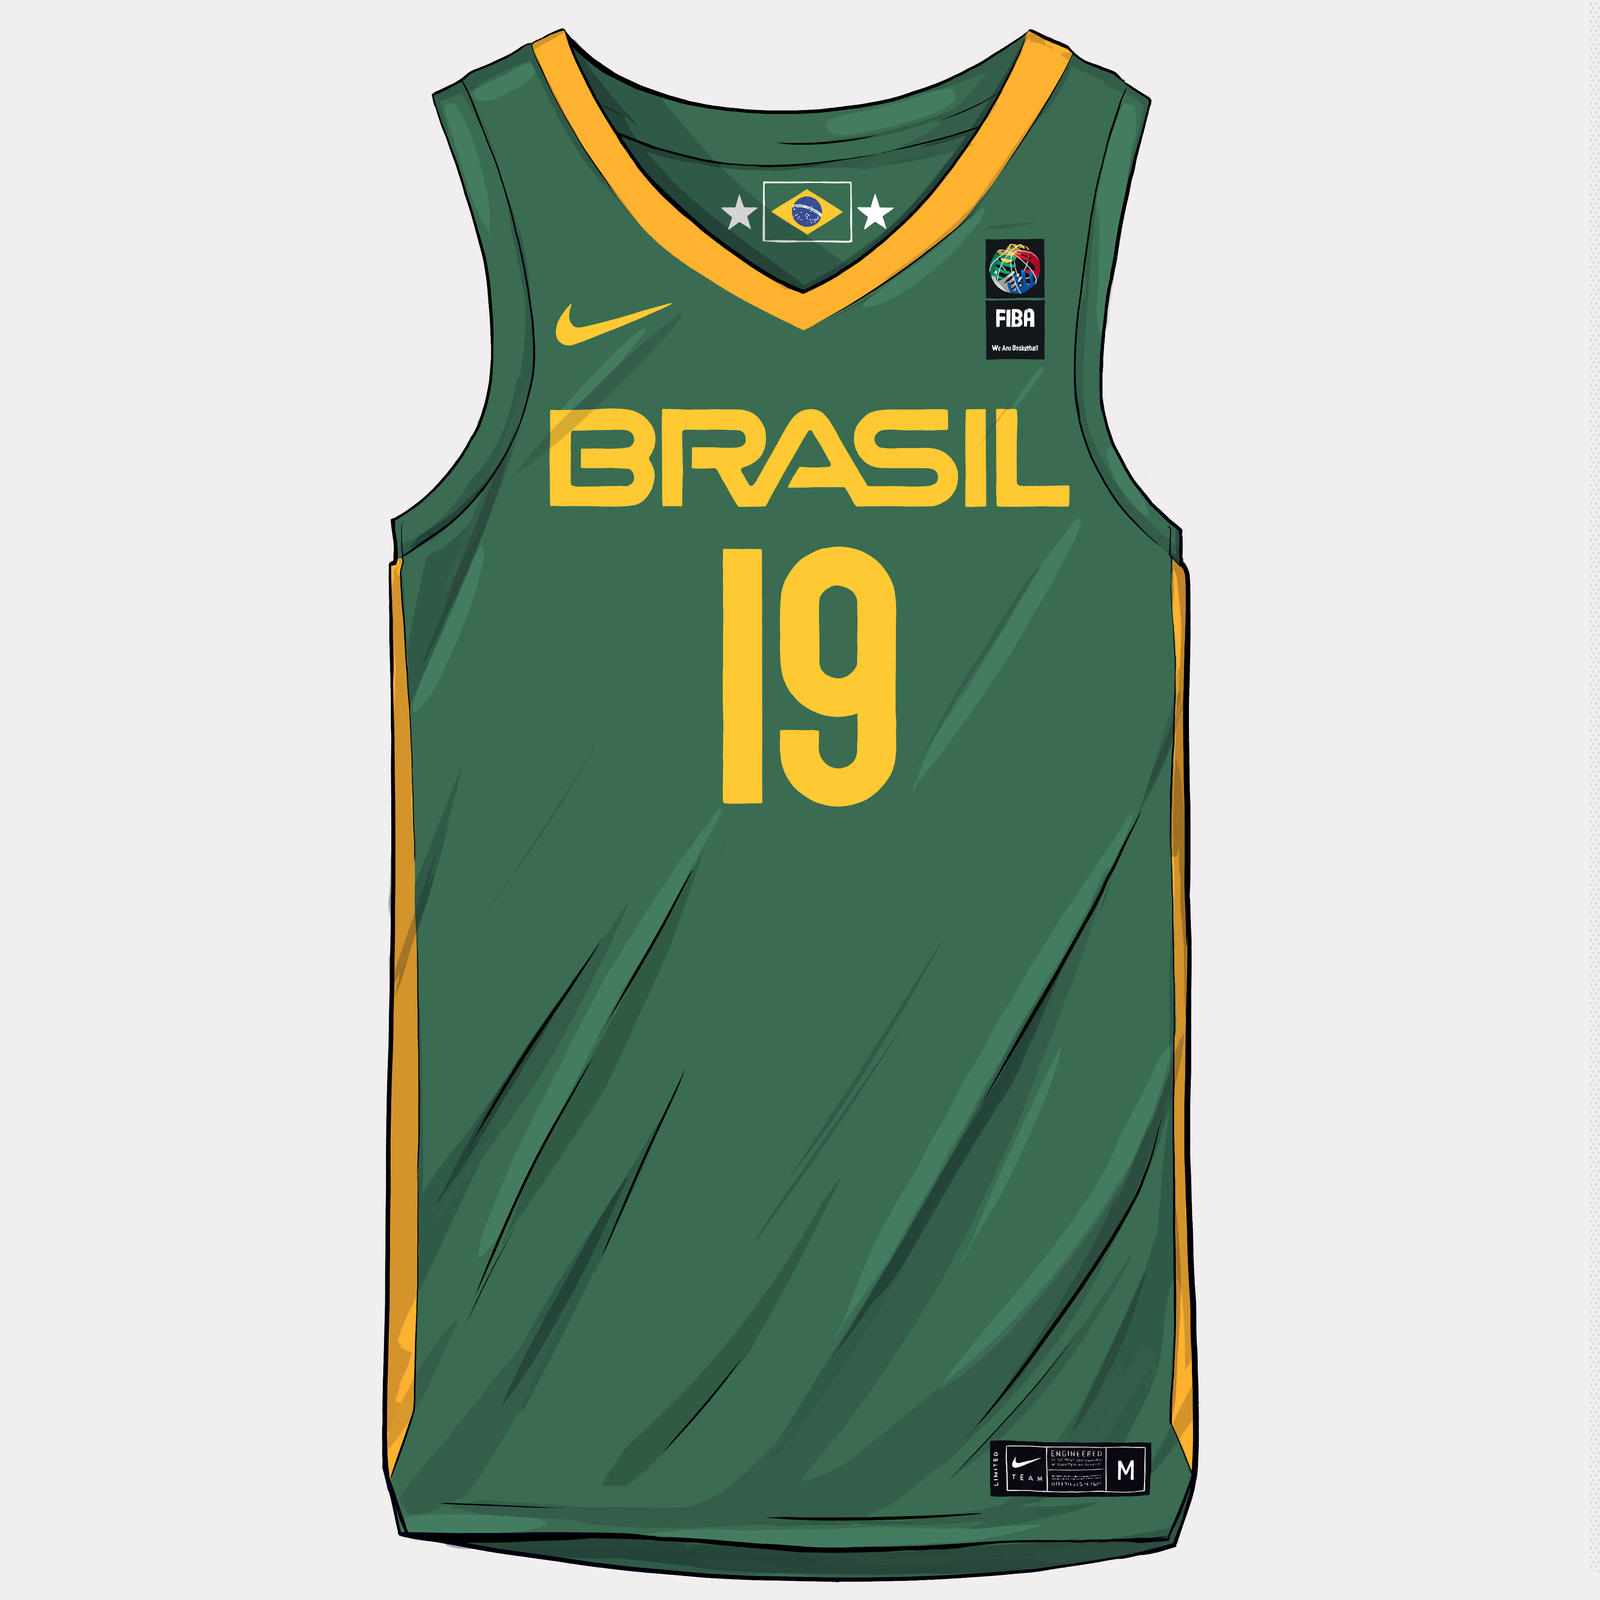 FIBA World Cup 2019 Uniforms 10